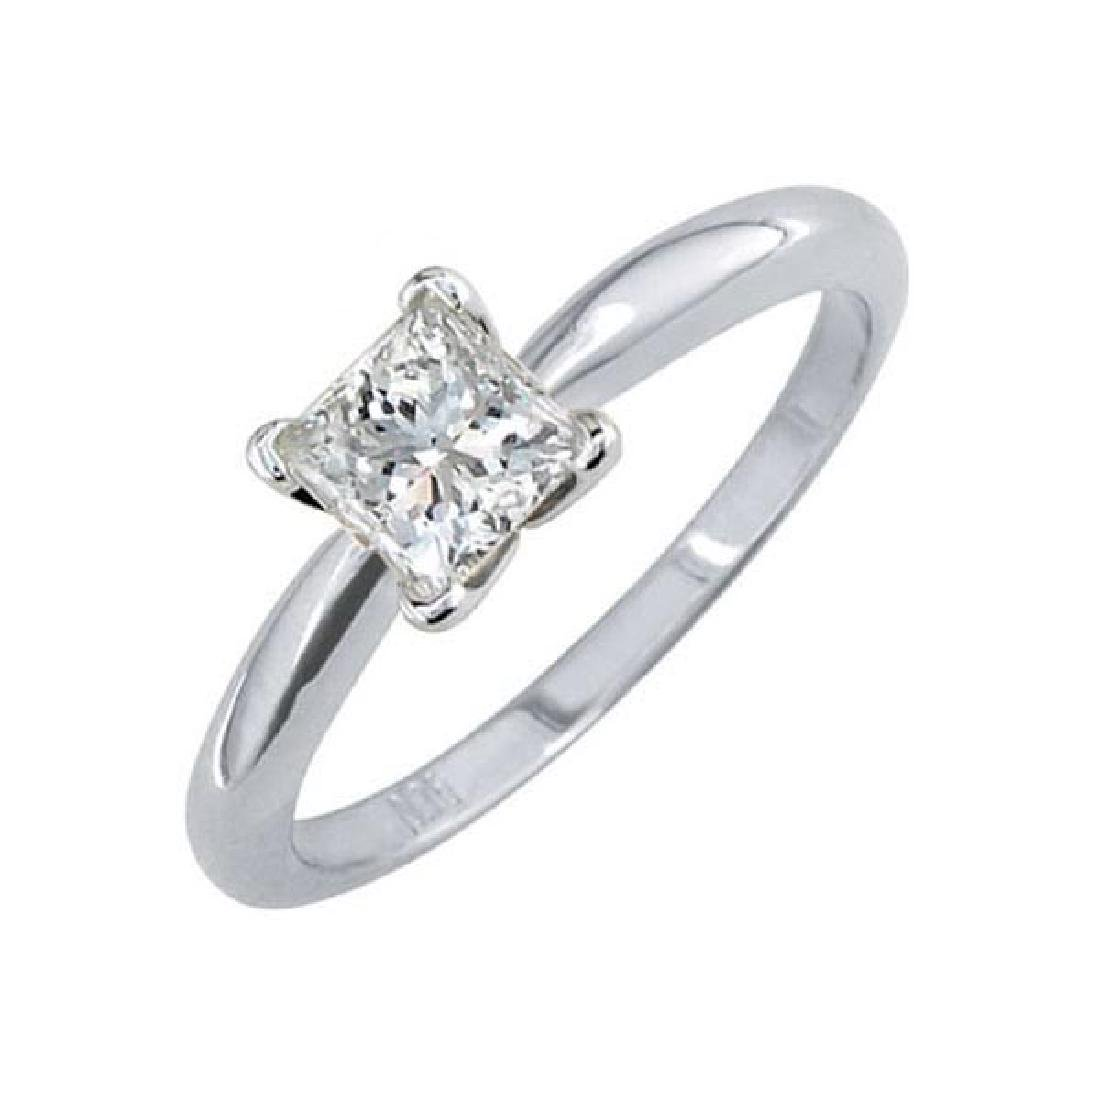 Certified 0.63 CTW Princess Diamond Solitaire 14k Ring